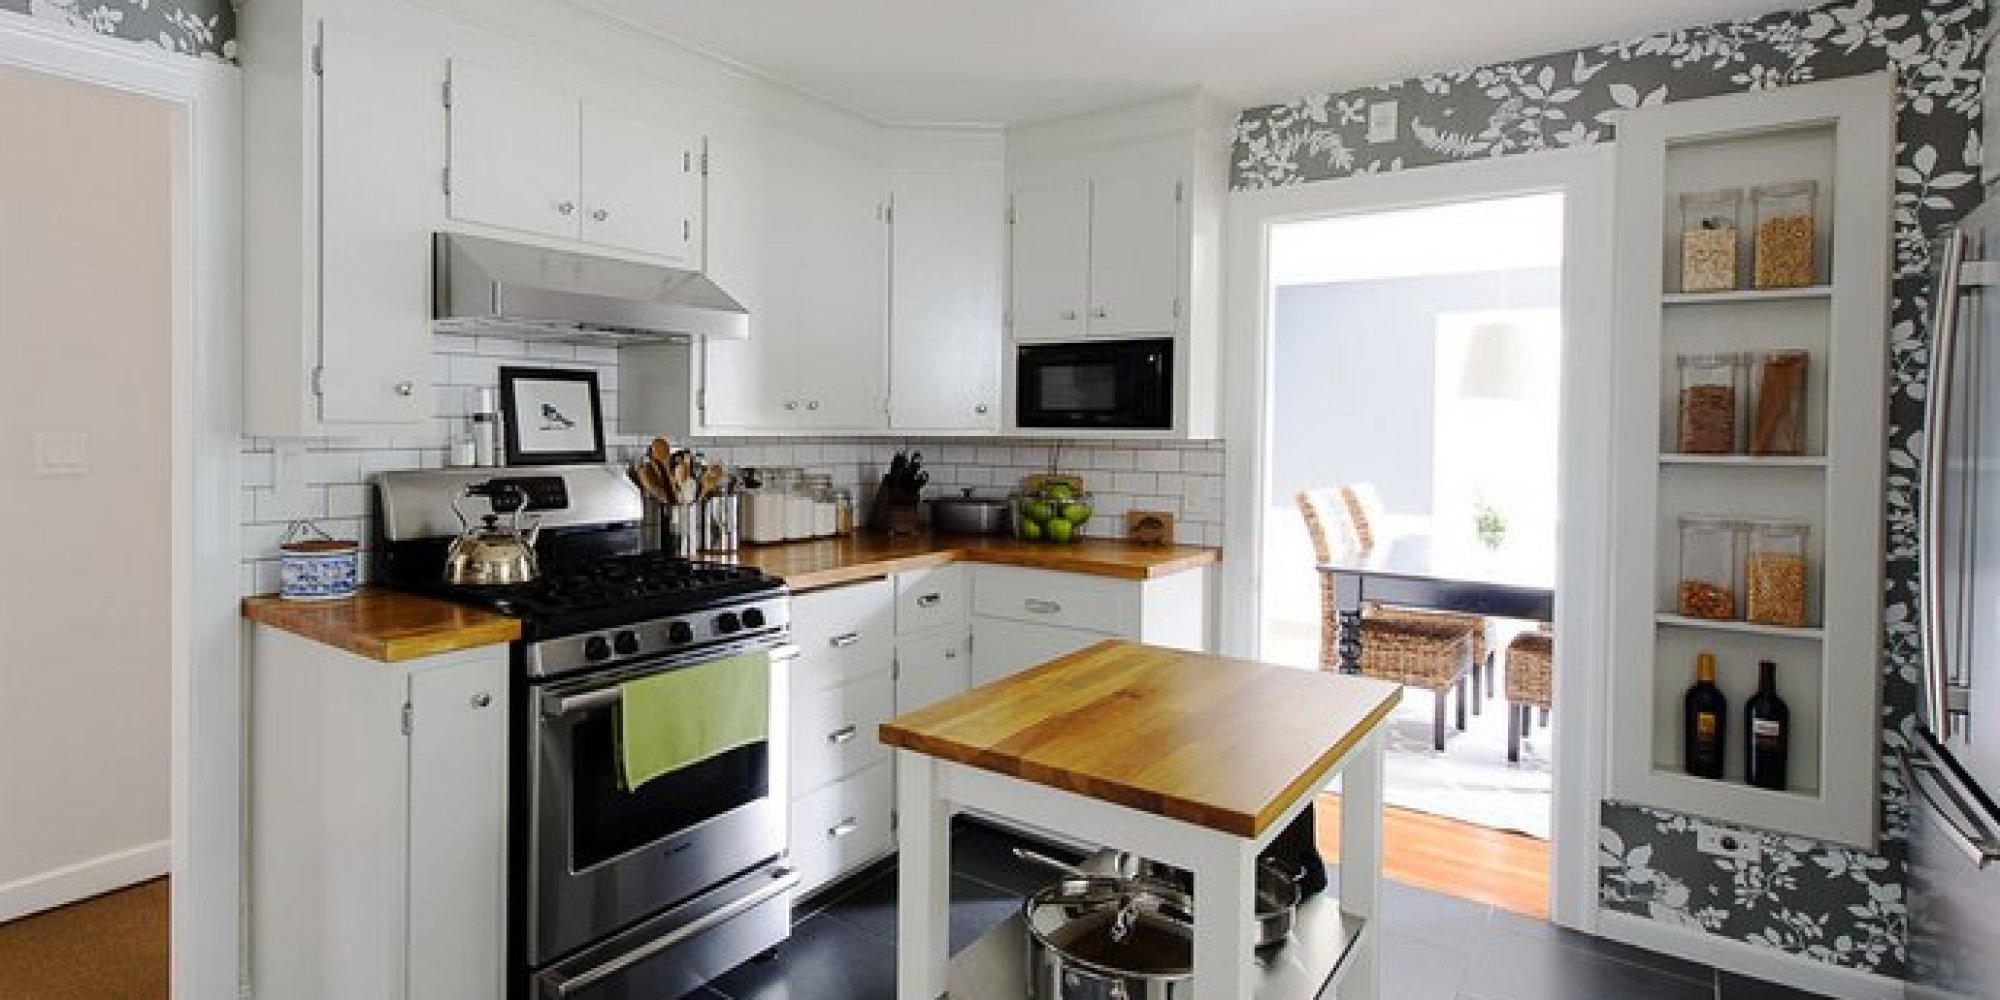 Updated Kitchens 19 Inexpensive Ways To Fix Up Your Kitchen Photos Huffpost